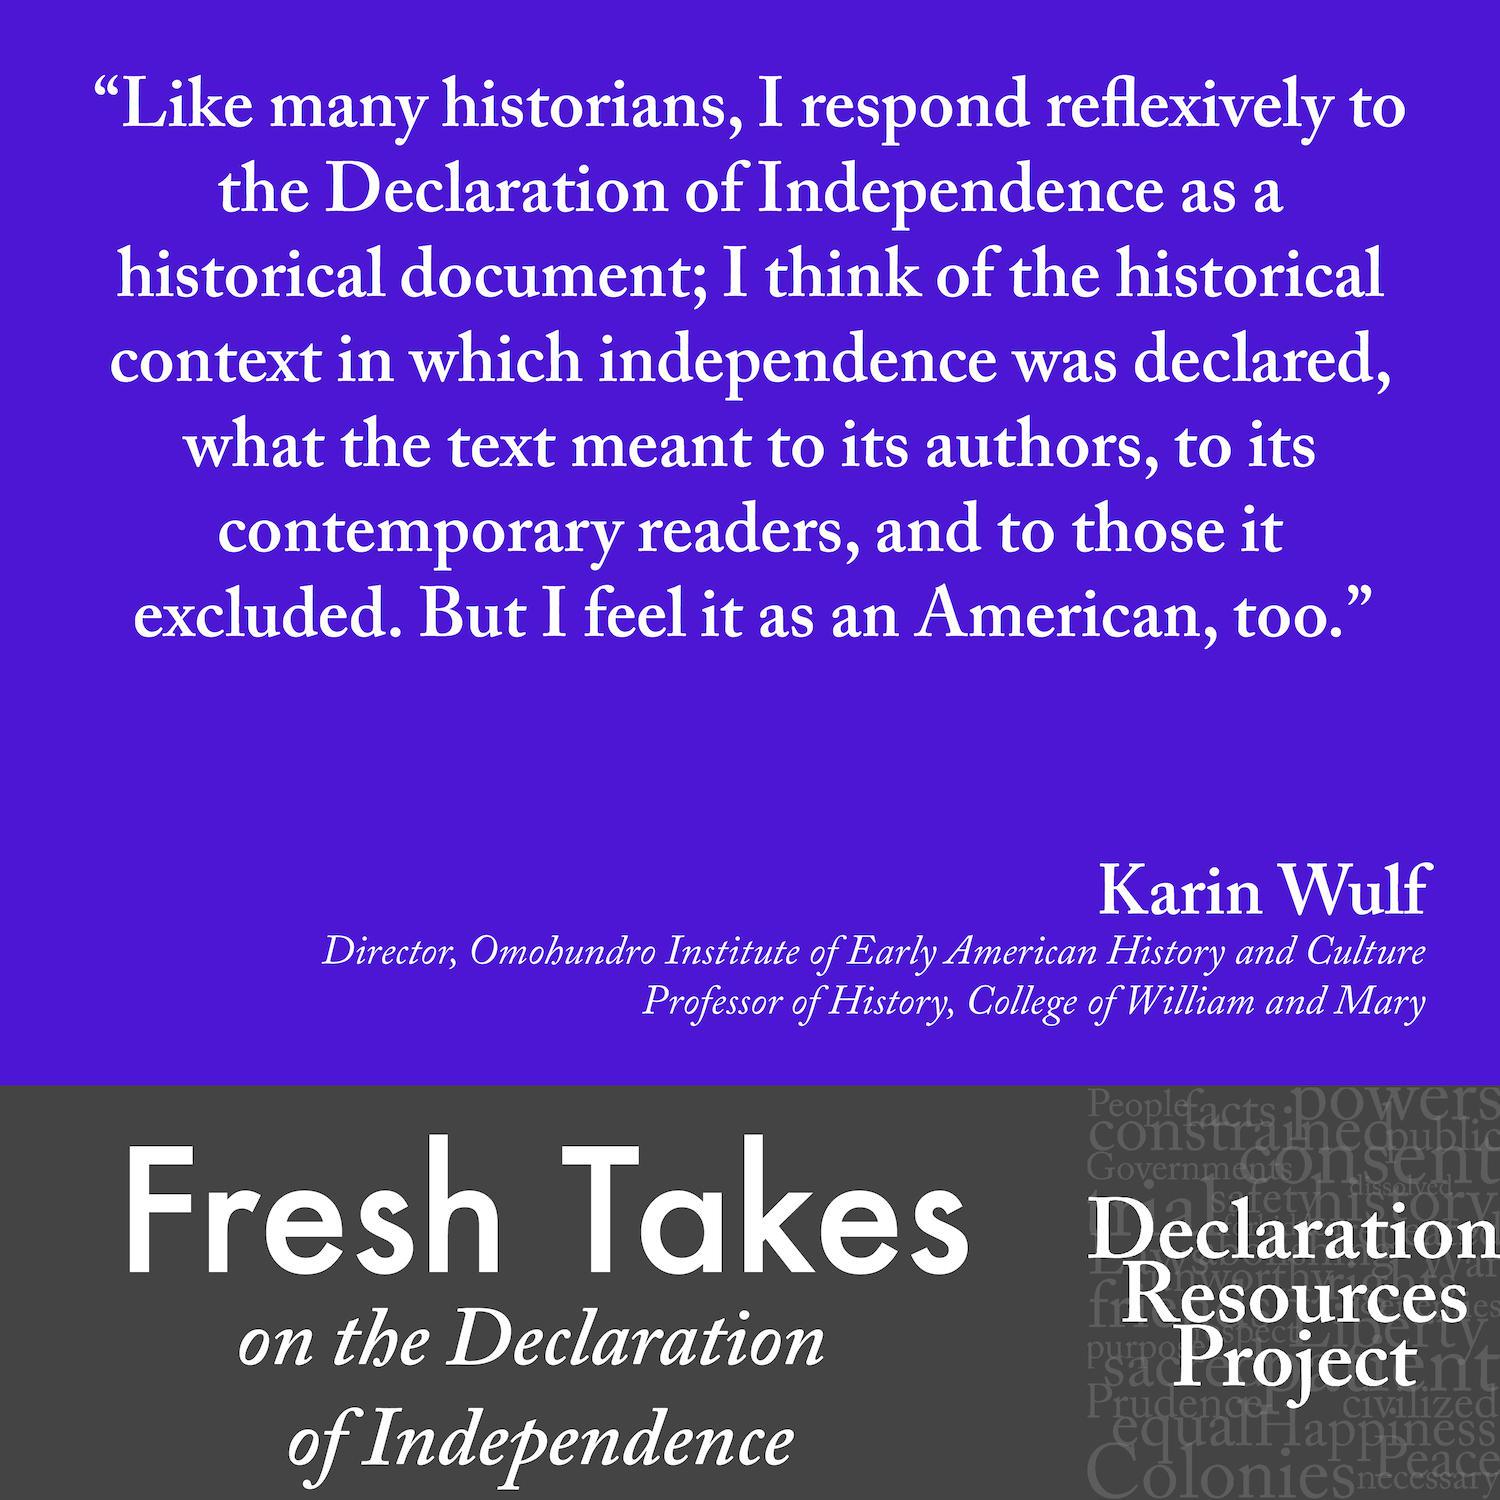 Karin Wulf's Fresh Take on the Declaration of Independence